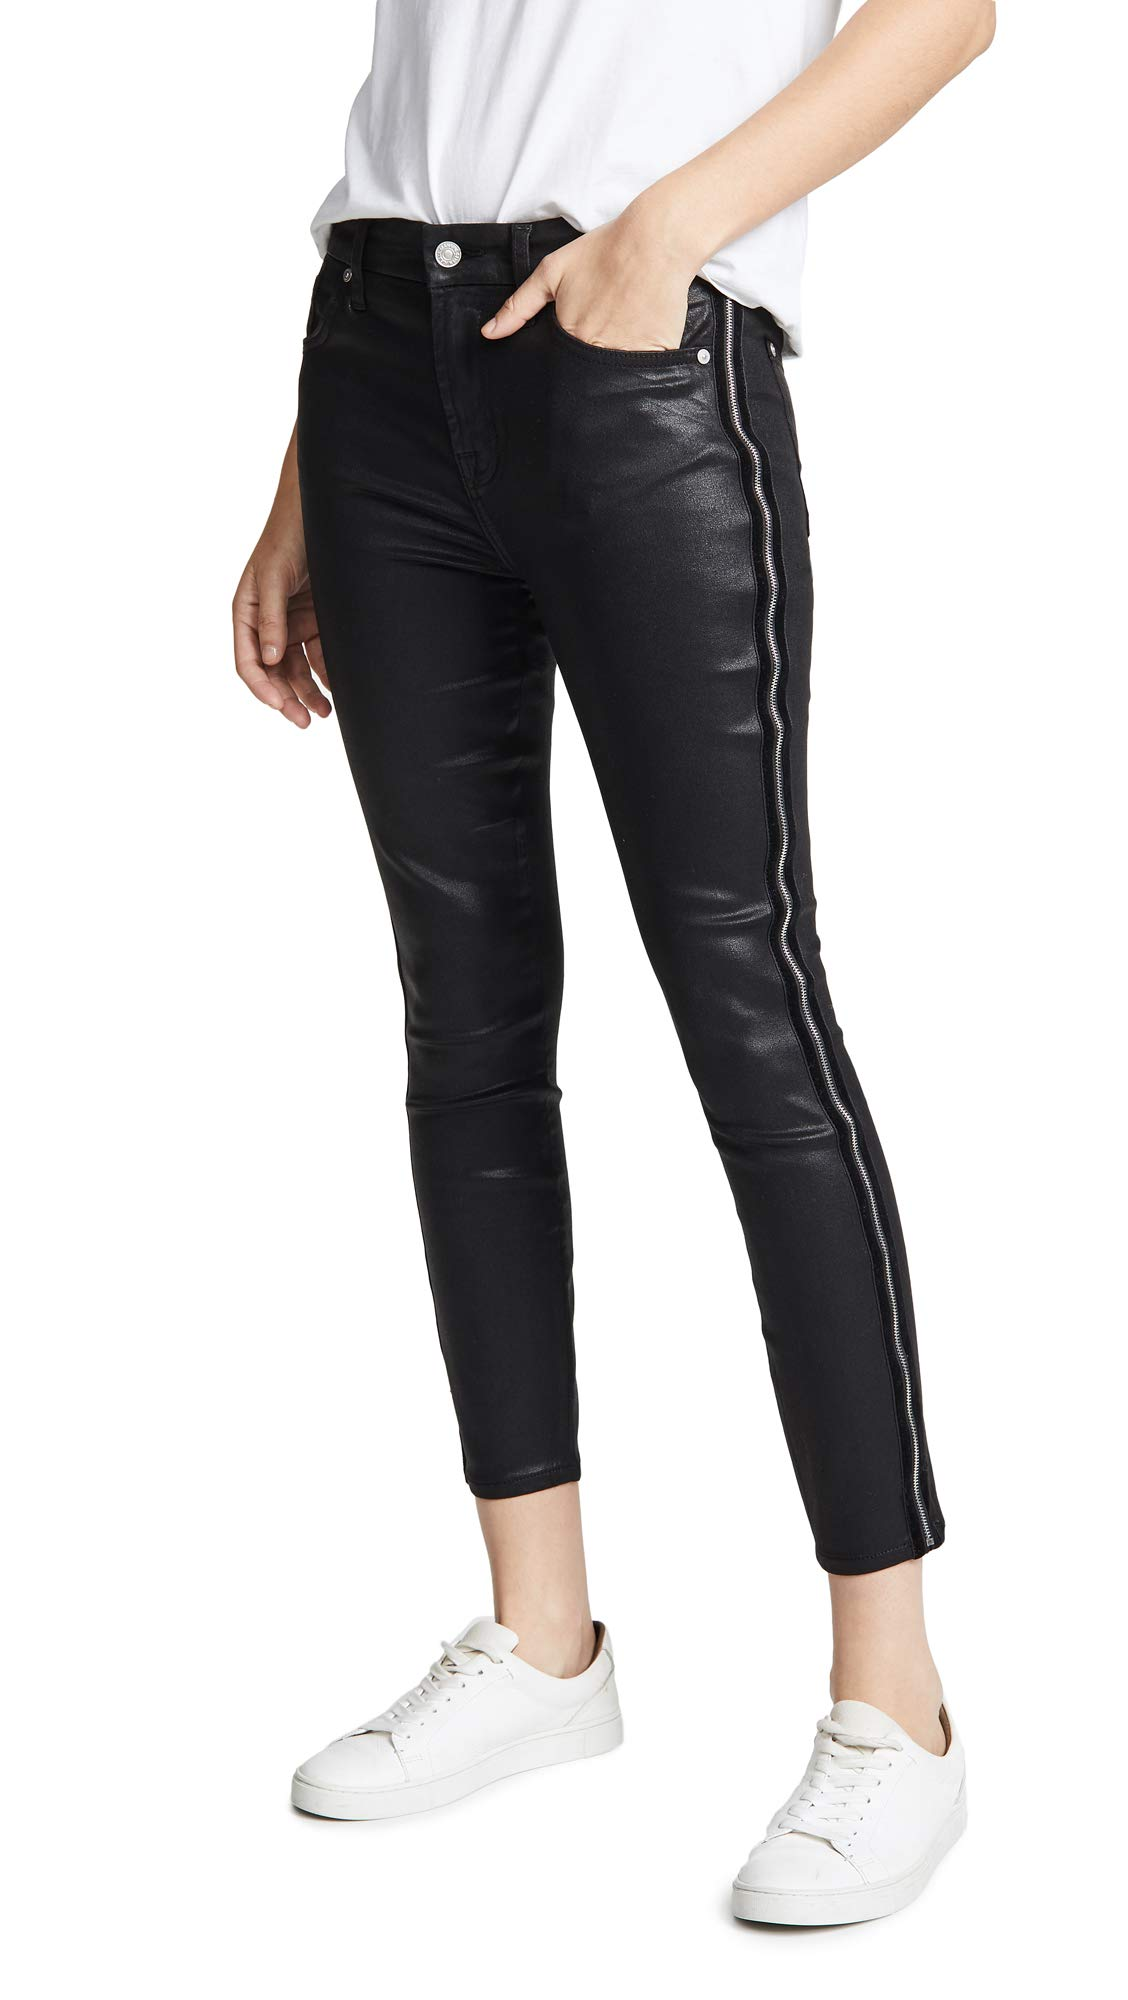 7 For All Mankind Women's B(air) Coated High-Waisted Skinny Jeans